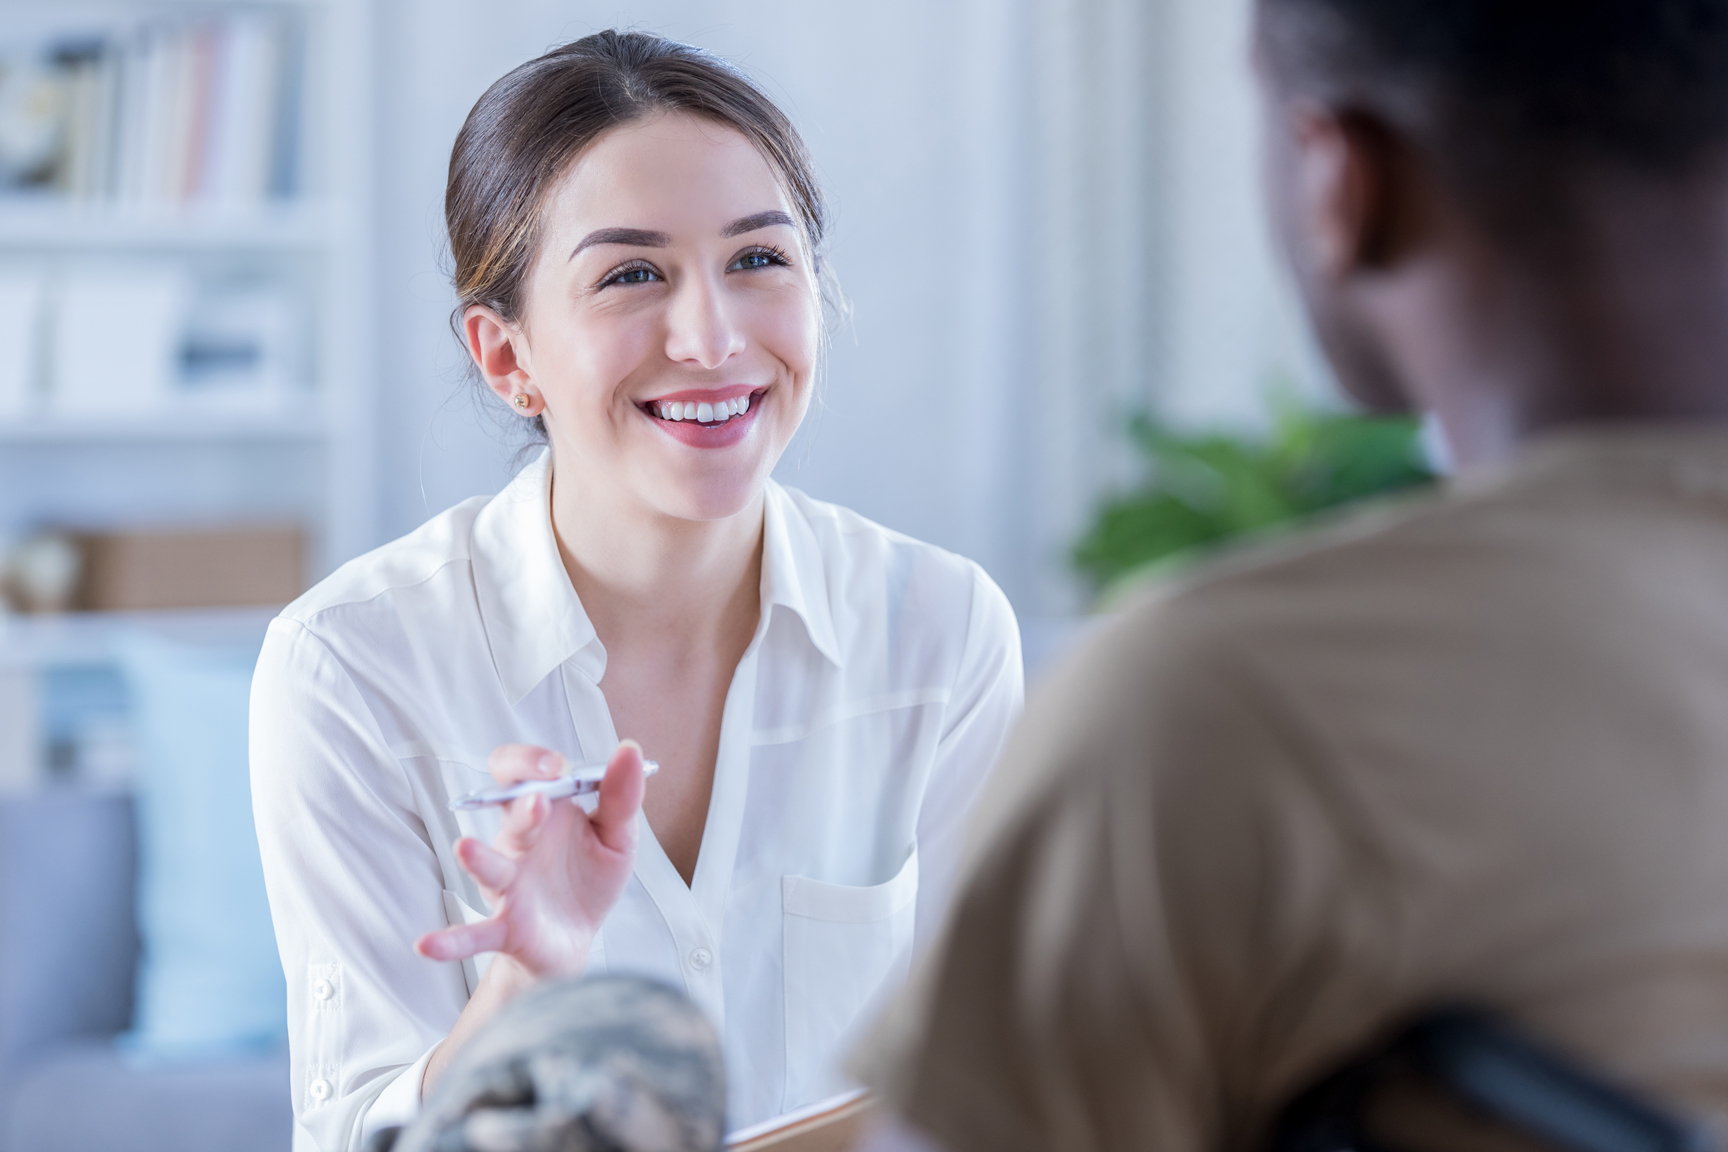 Young business women smiling at service memeber, engaged in conversation